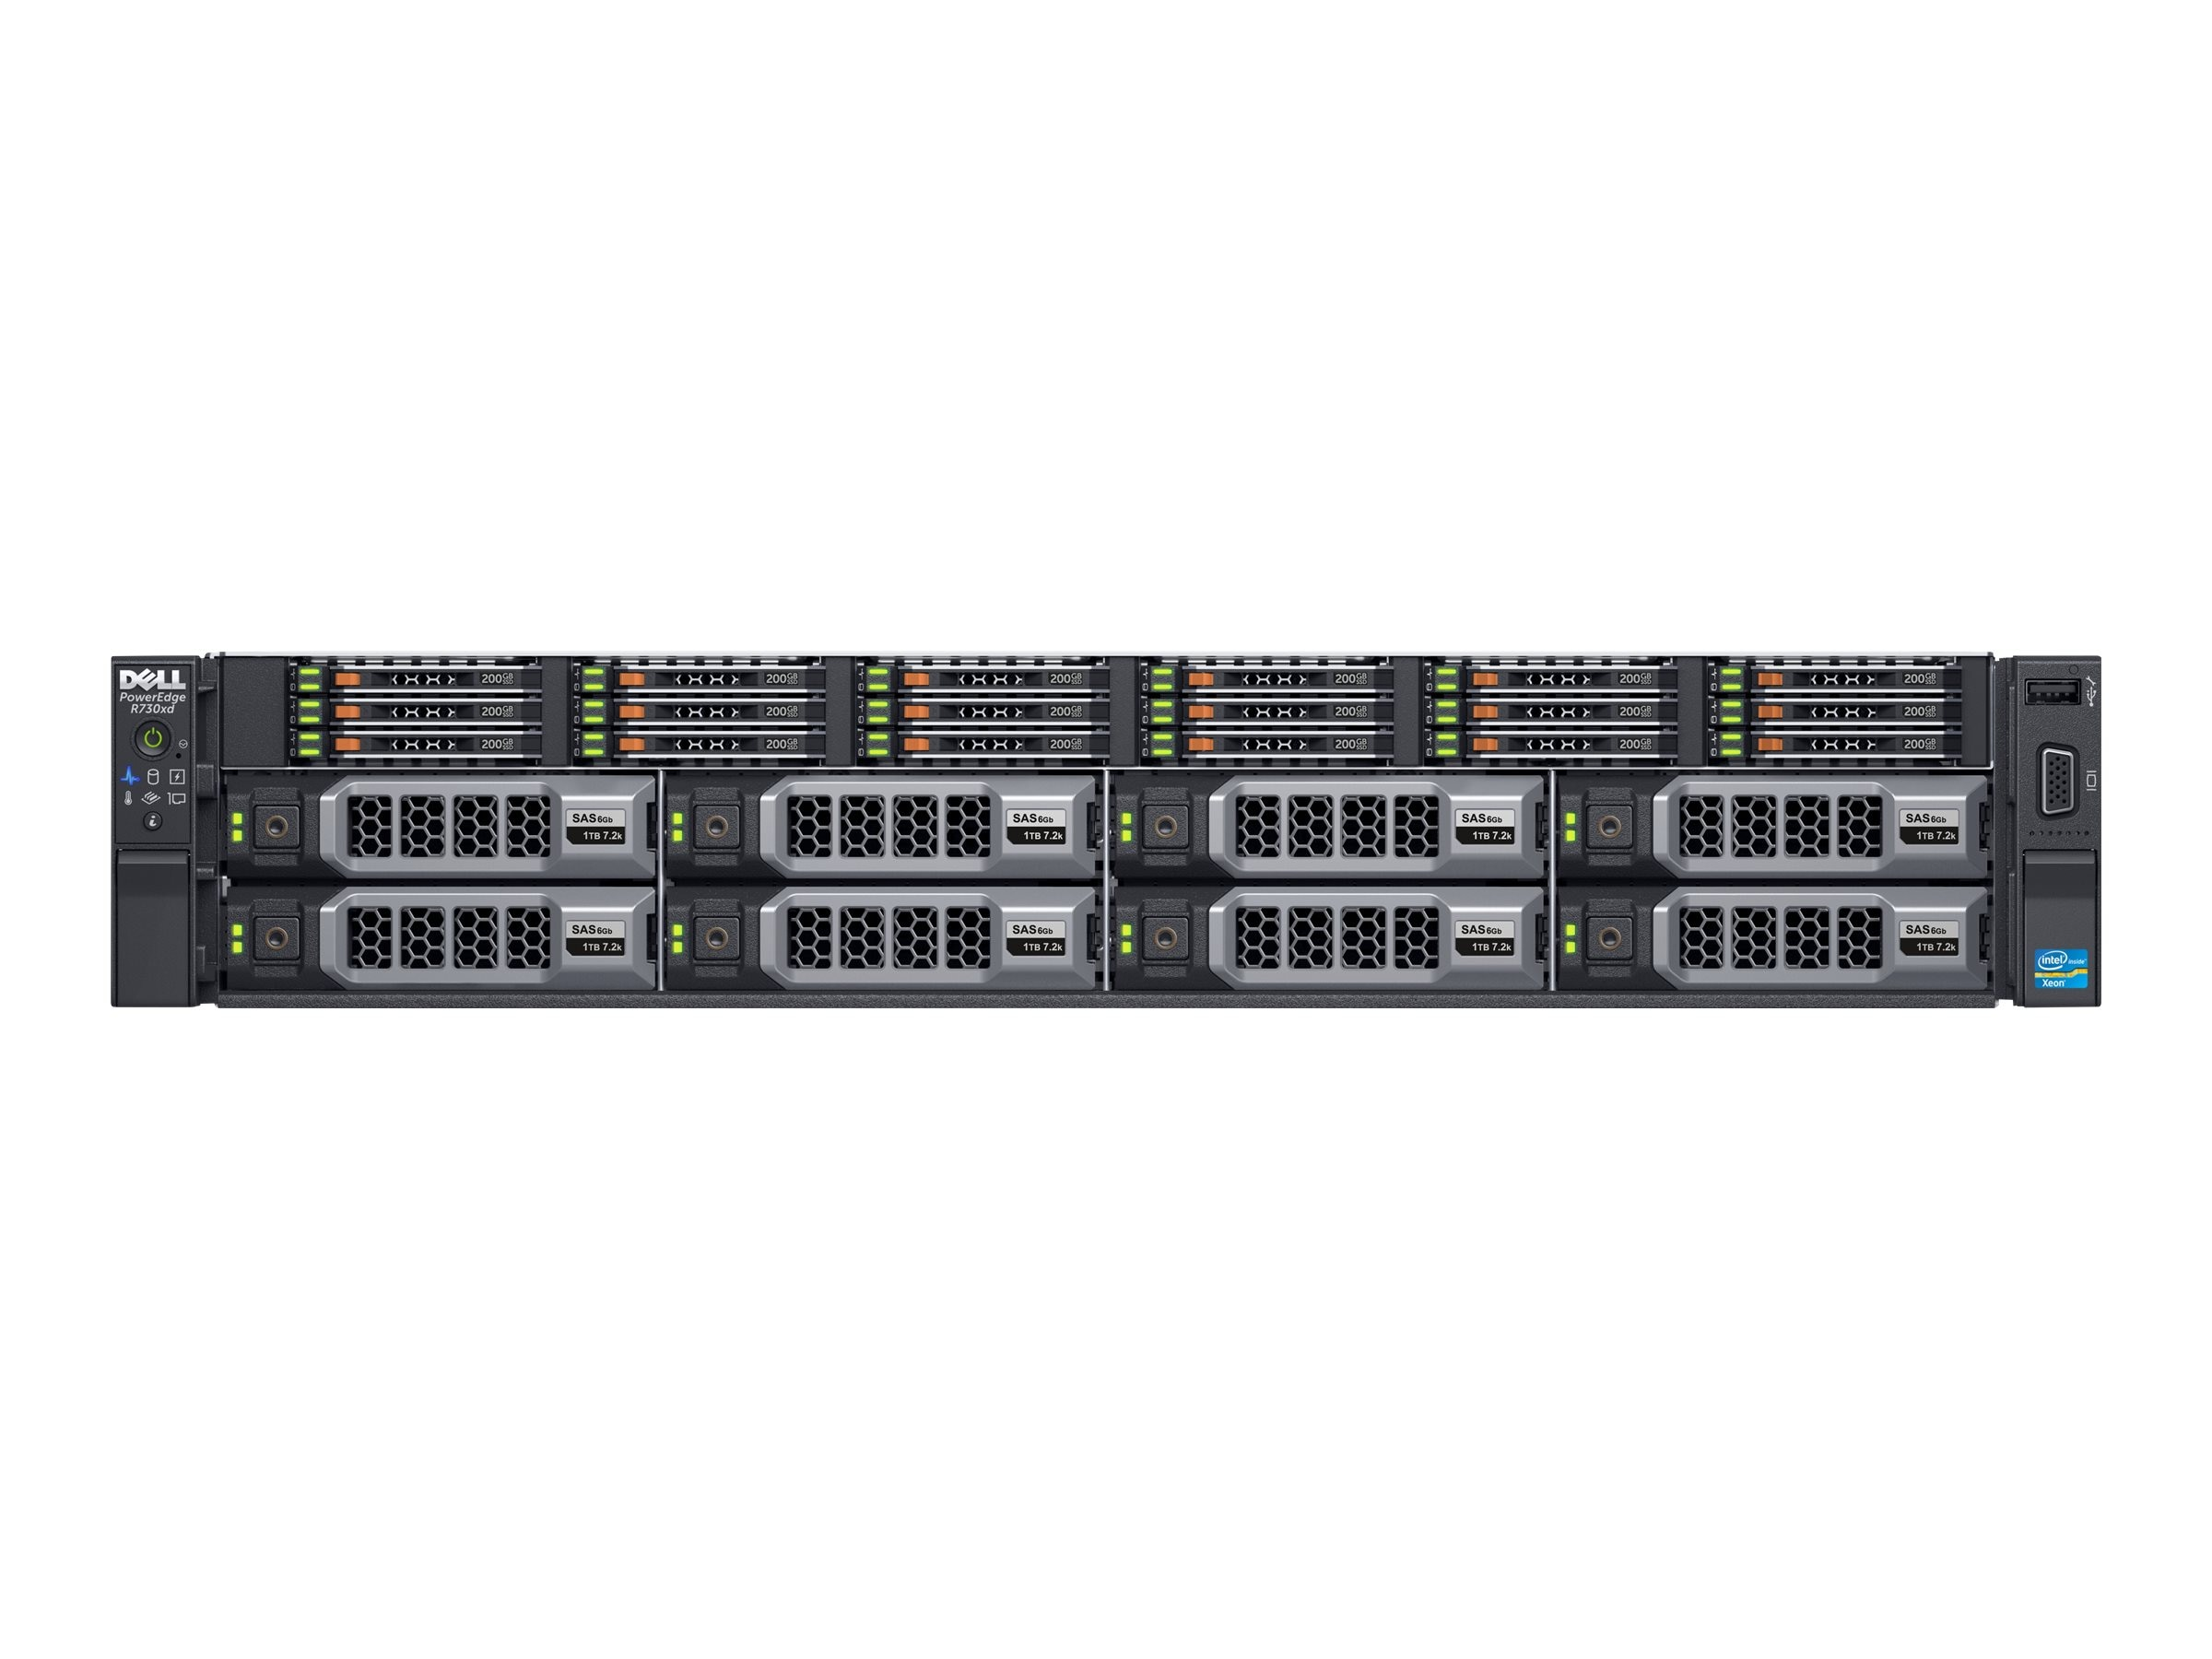 Dell PowerEdge R730xd Xeon E5-2640 v3 16GB H730, 463-4004